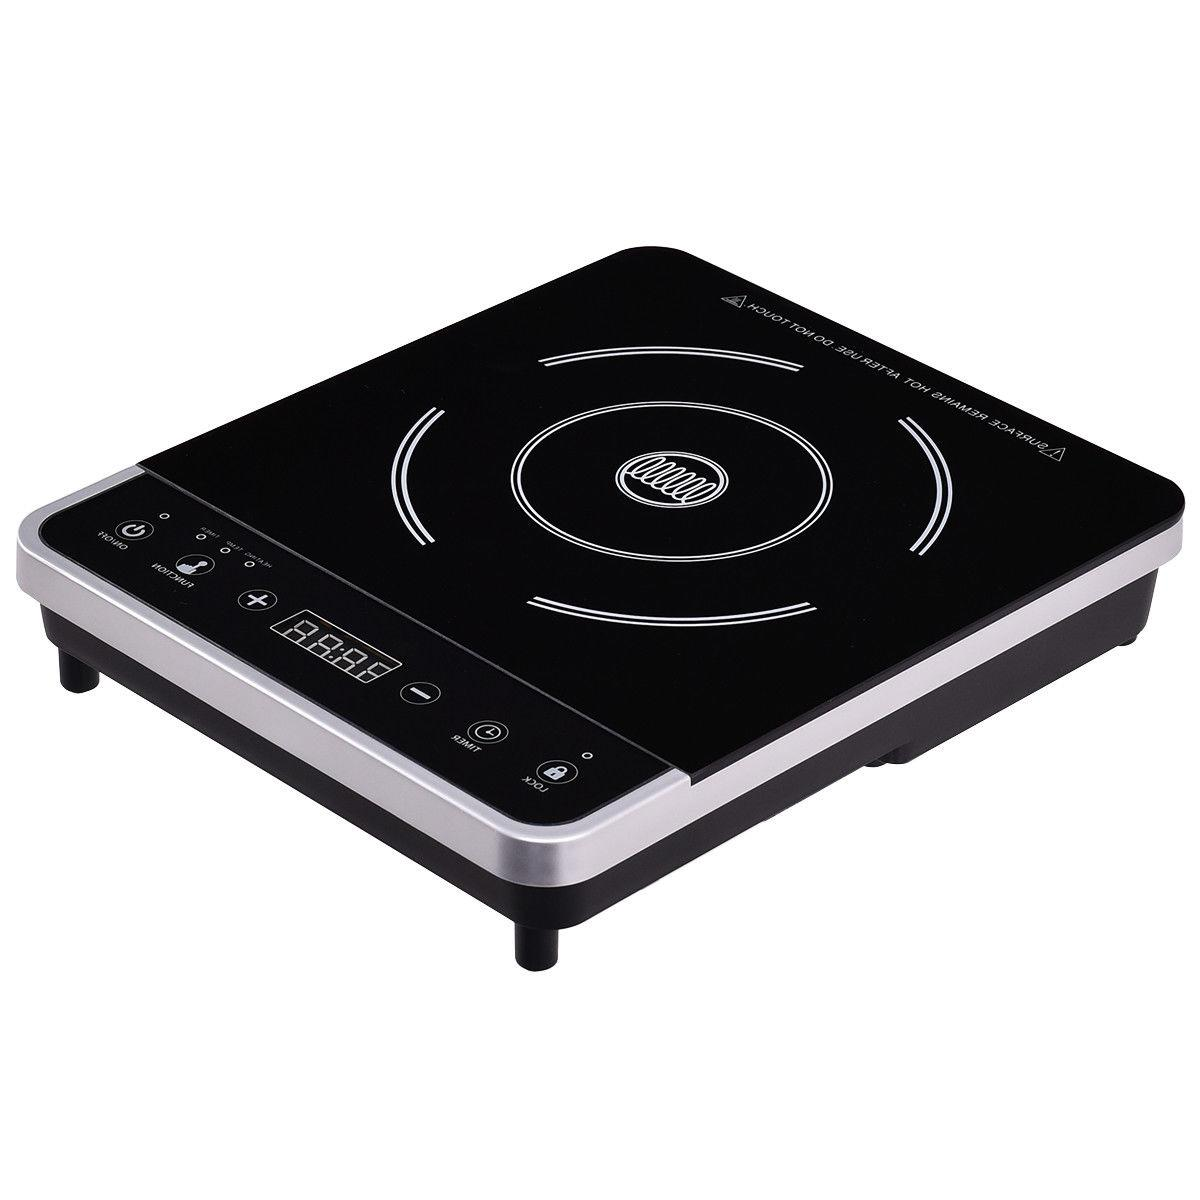 Electric Burner Digital Hot Cooktop Countertop New